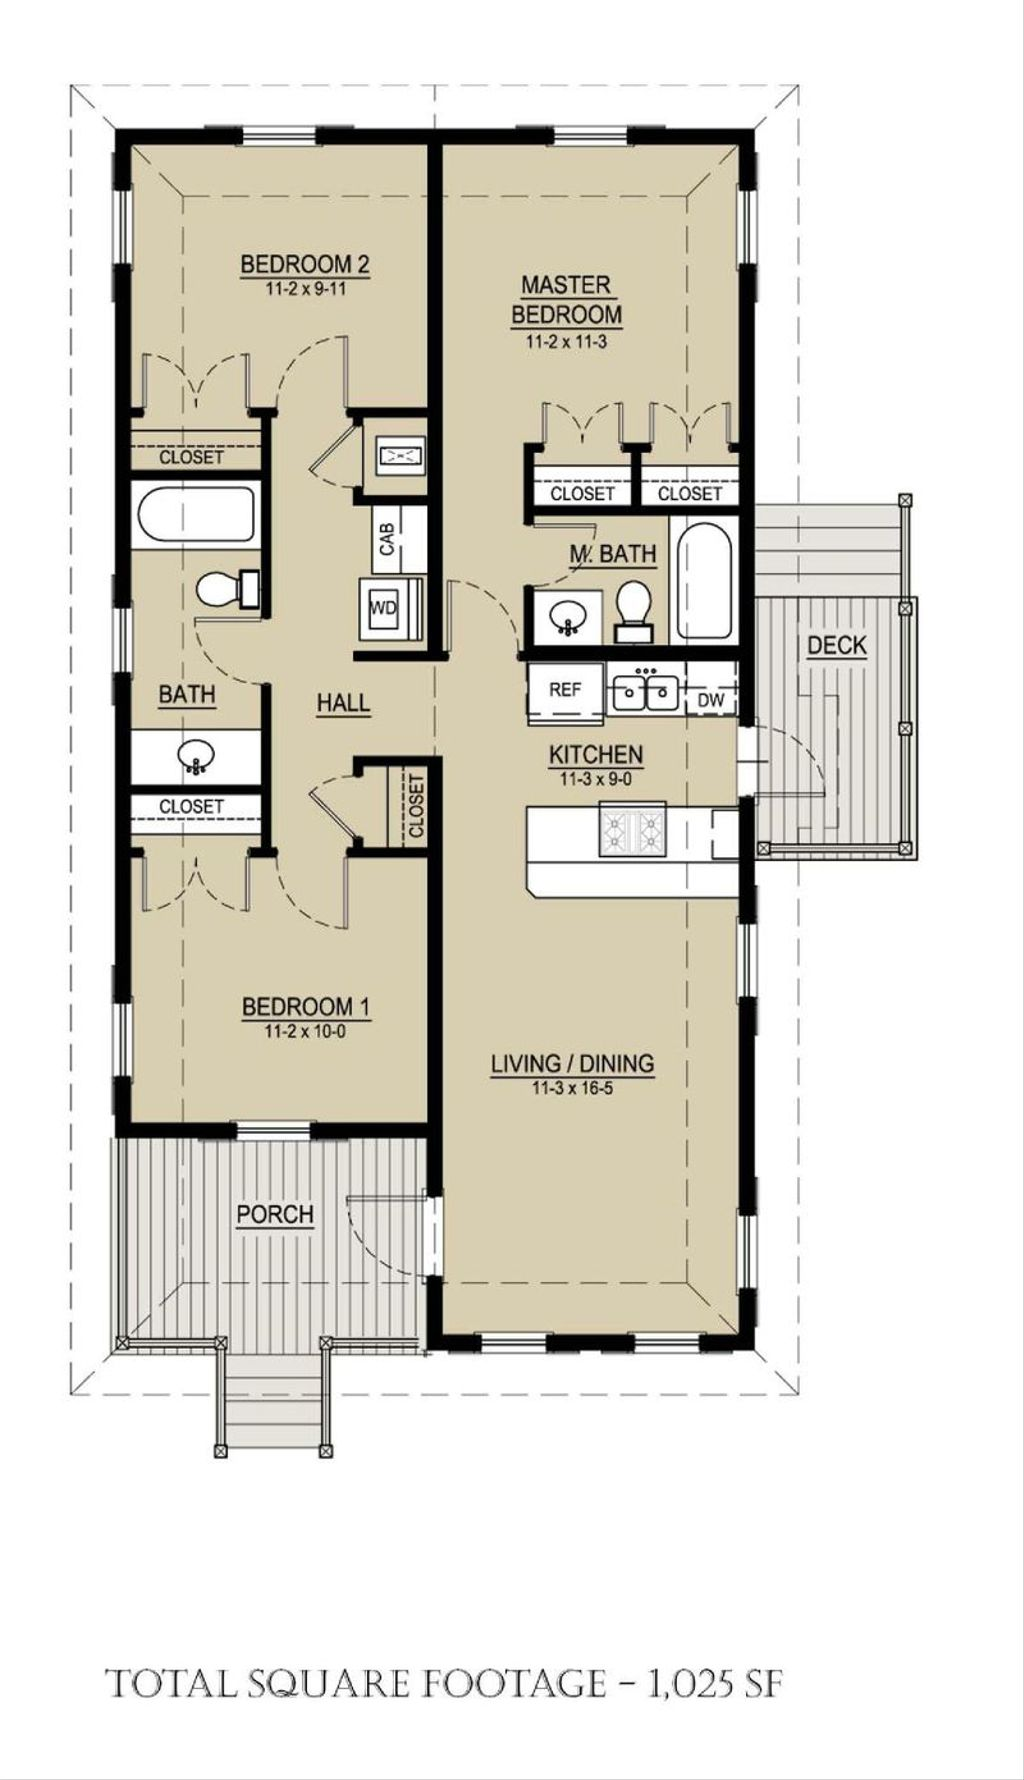 Cottage Style House Plan 3 Beds 2 Baths 1025 Sq Ft Plan 536 3 Houseplans Com,Simple Floor Plan With 2 Bedrooms